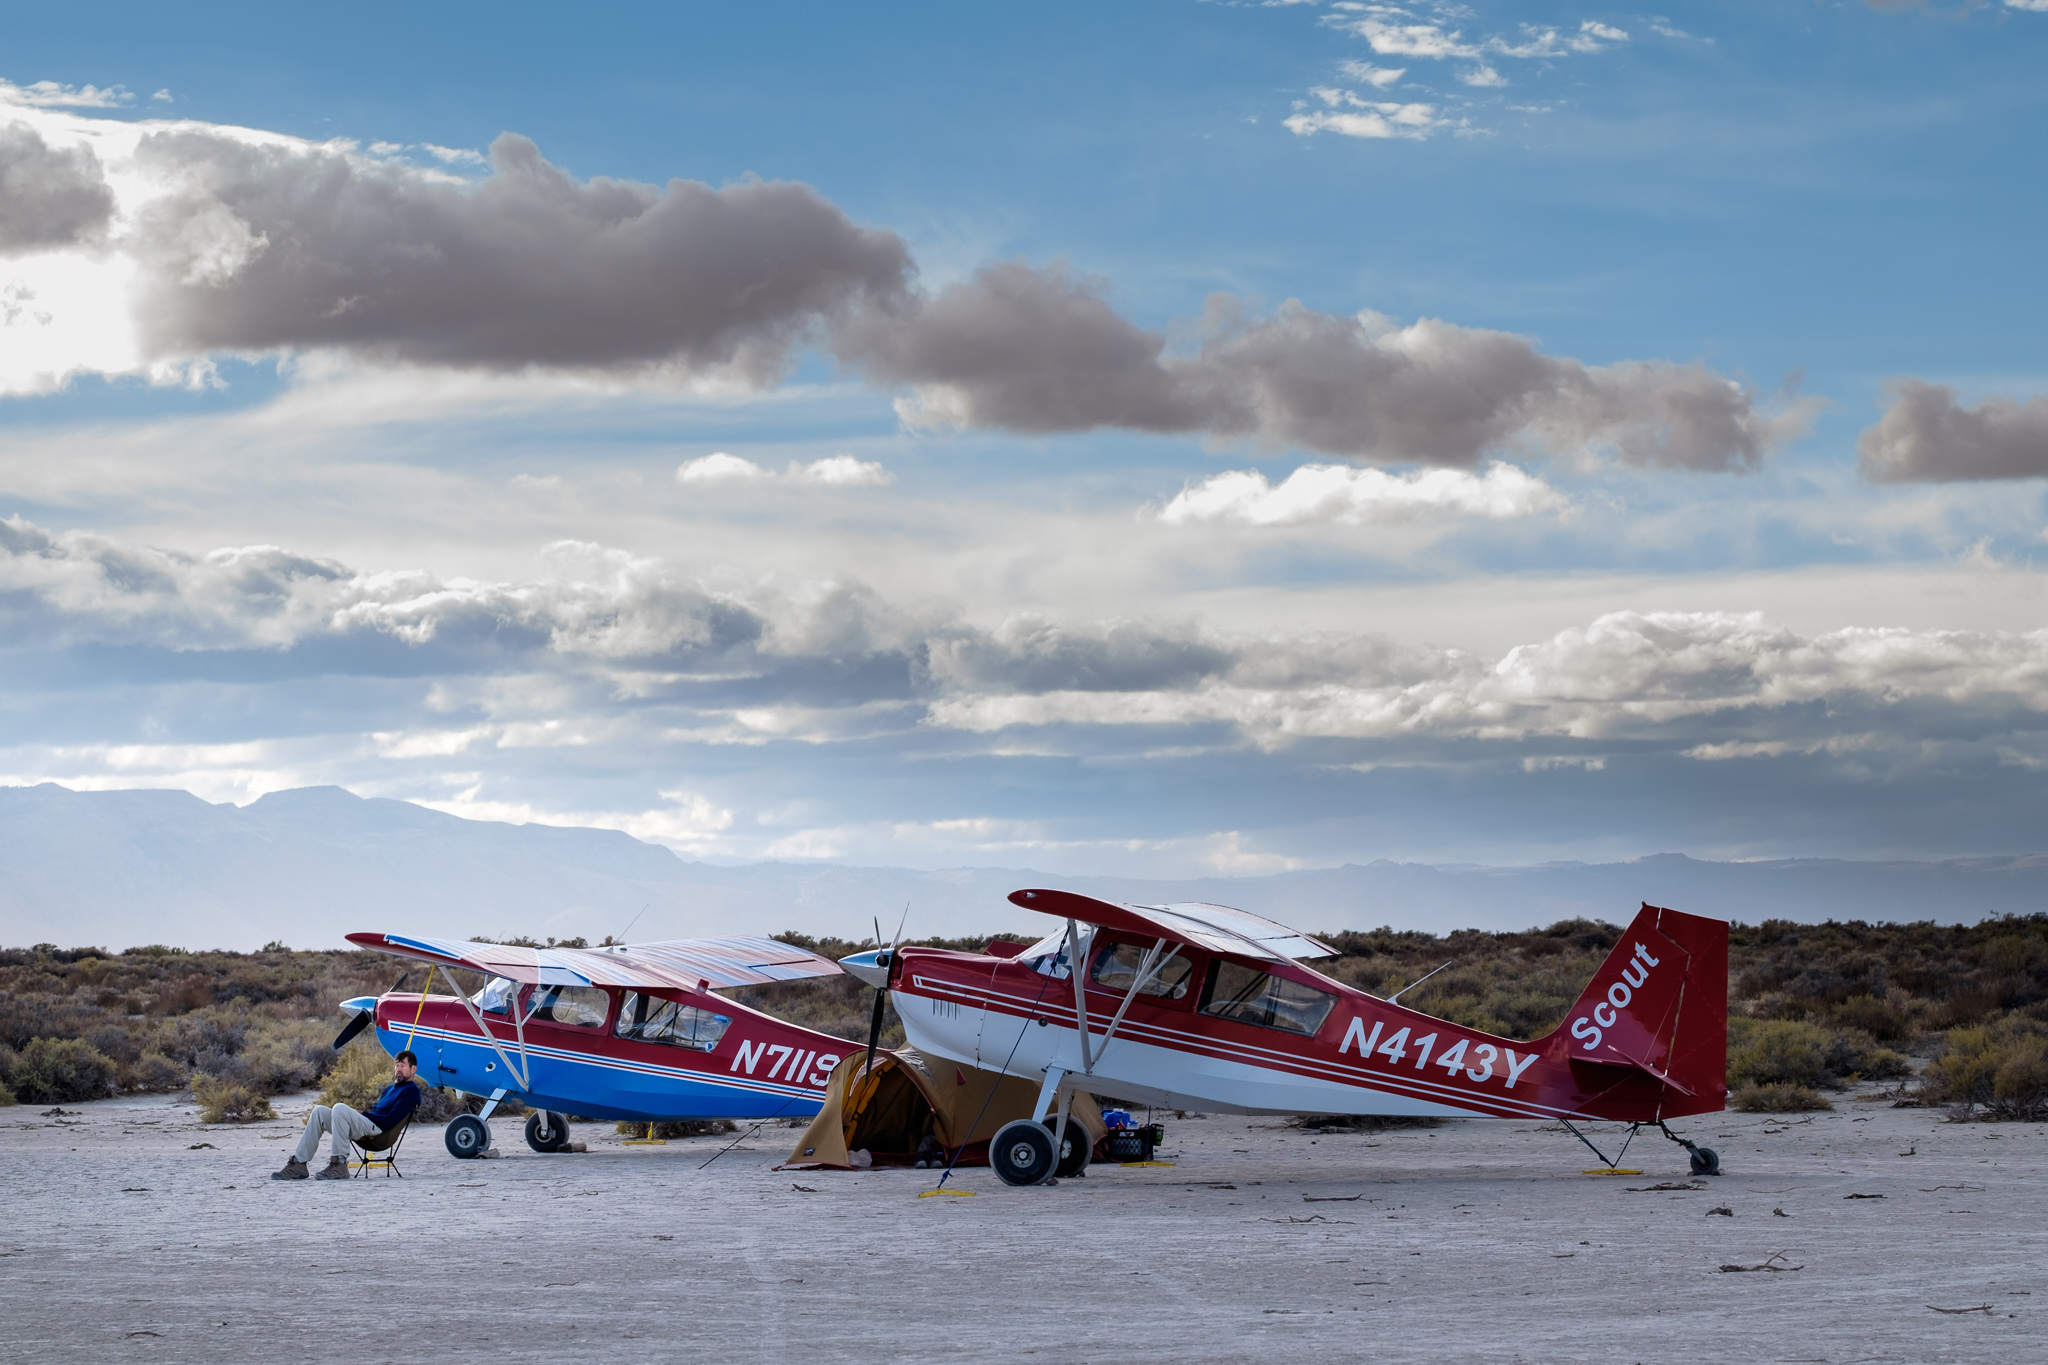 Taildraggers and tents on the playa